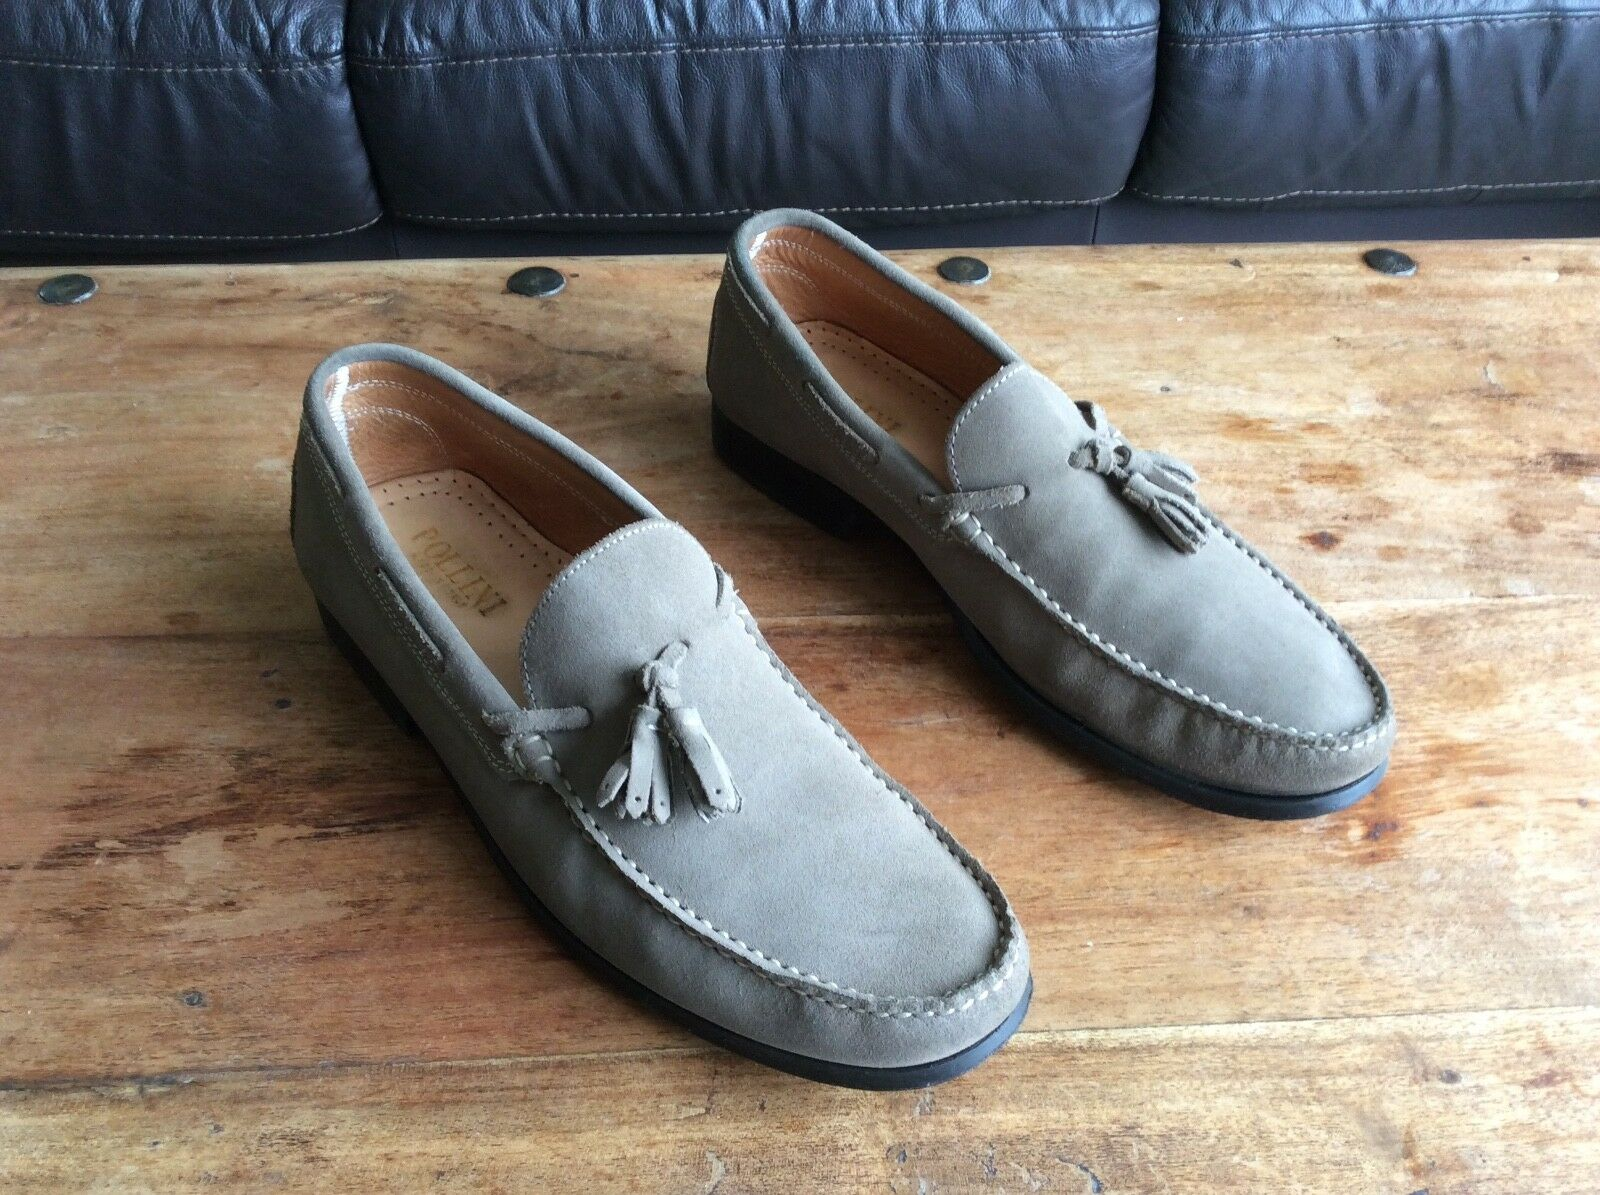 Men's, Pollini, Nubuck Leather, Tassled Loafers, Size 44.